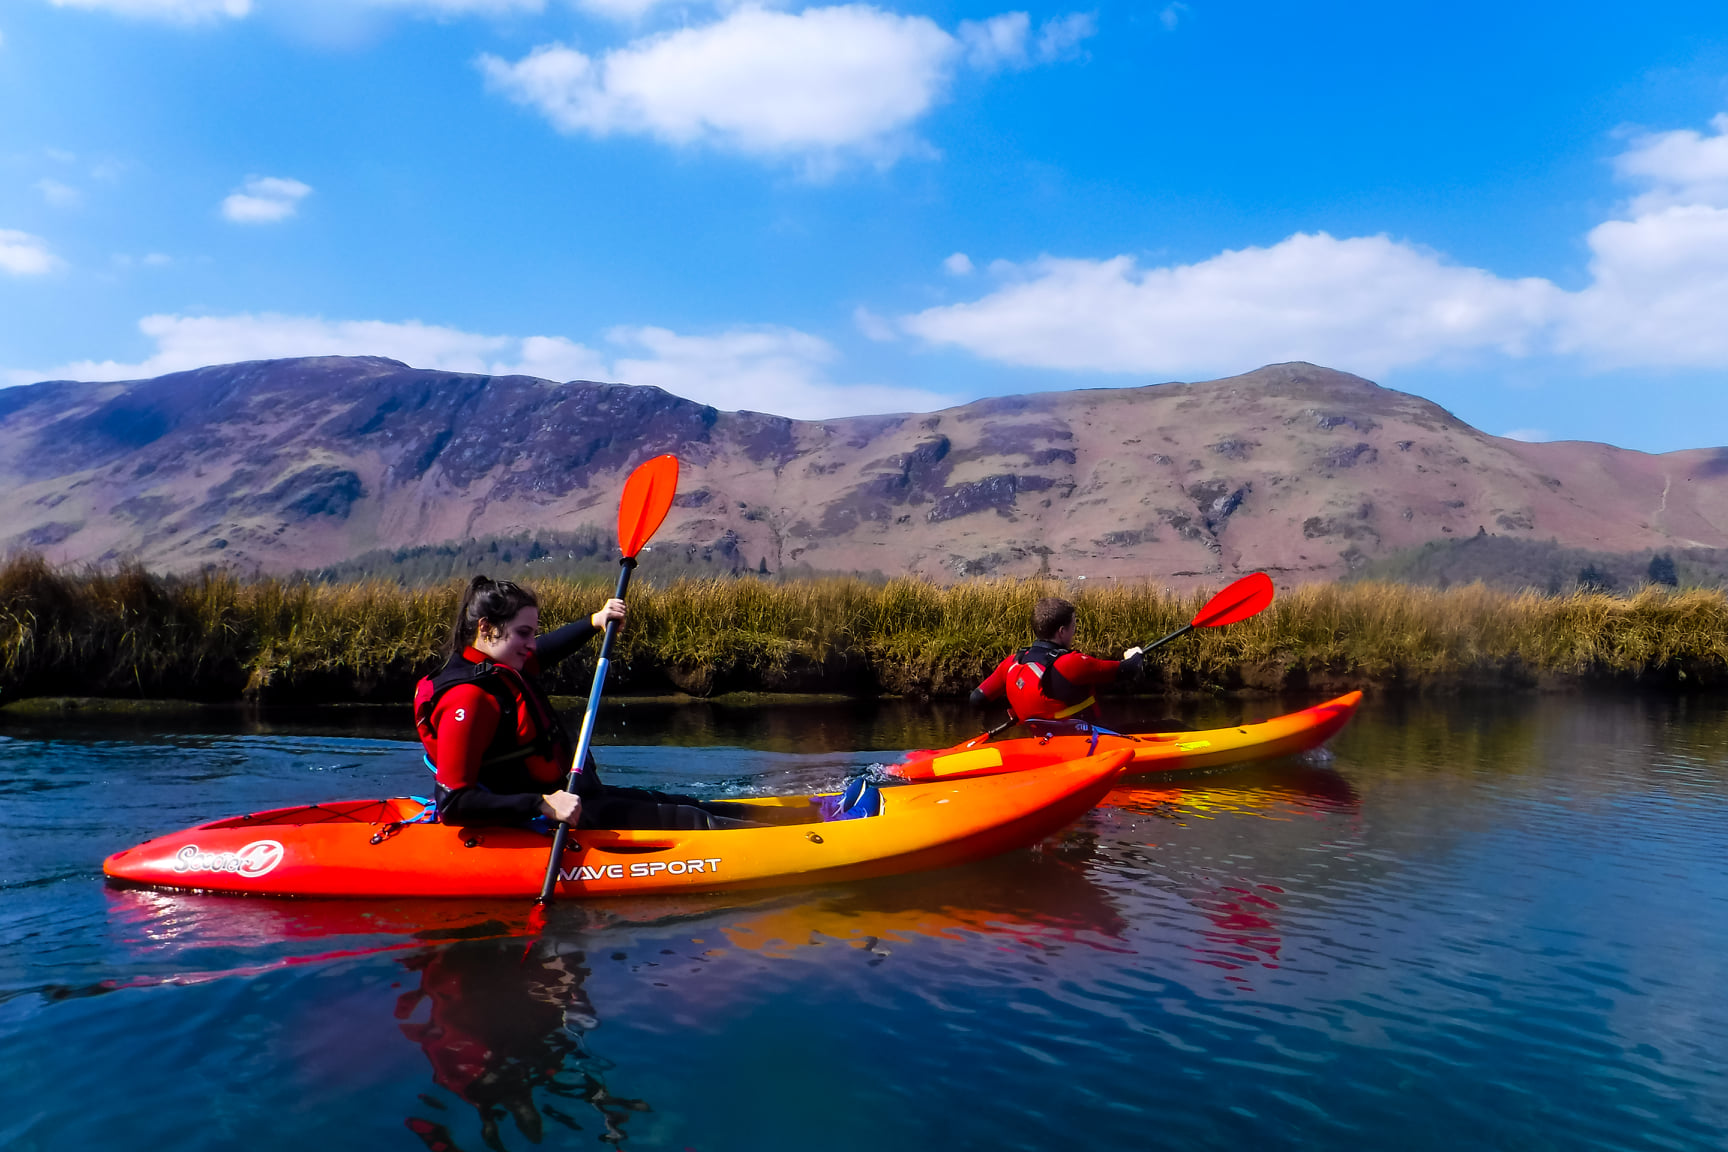 Lake district kayak expereince: Derwentwater kayaking Day Trip